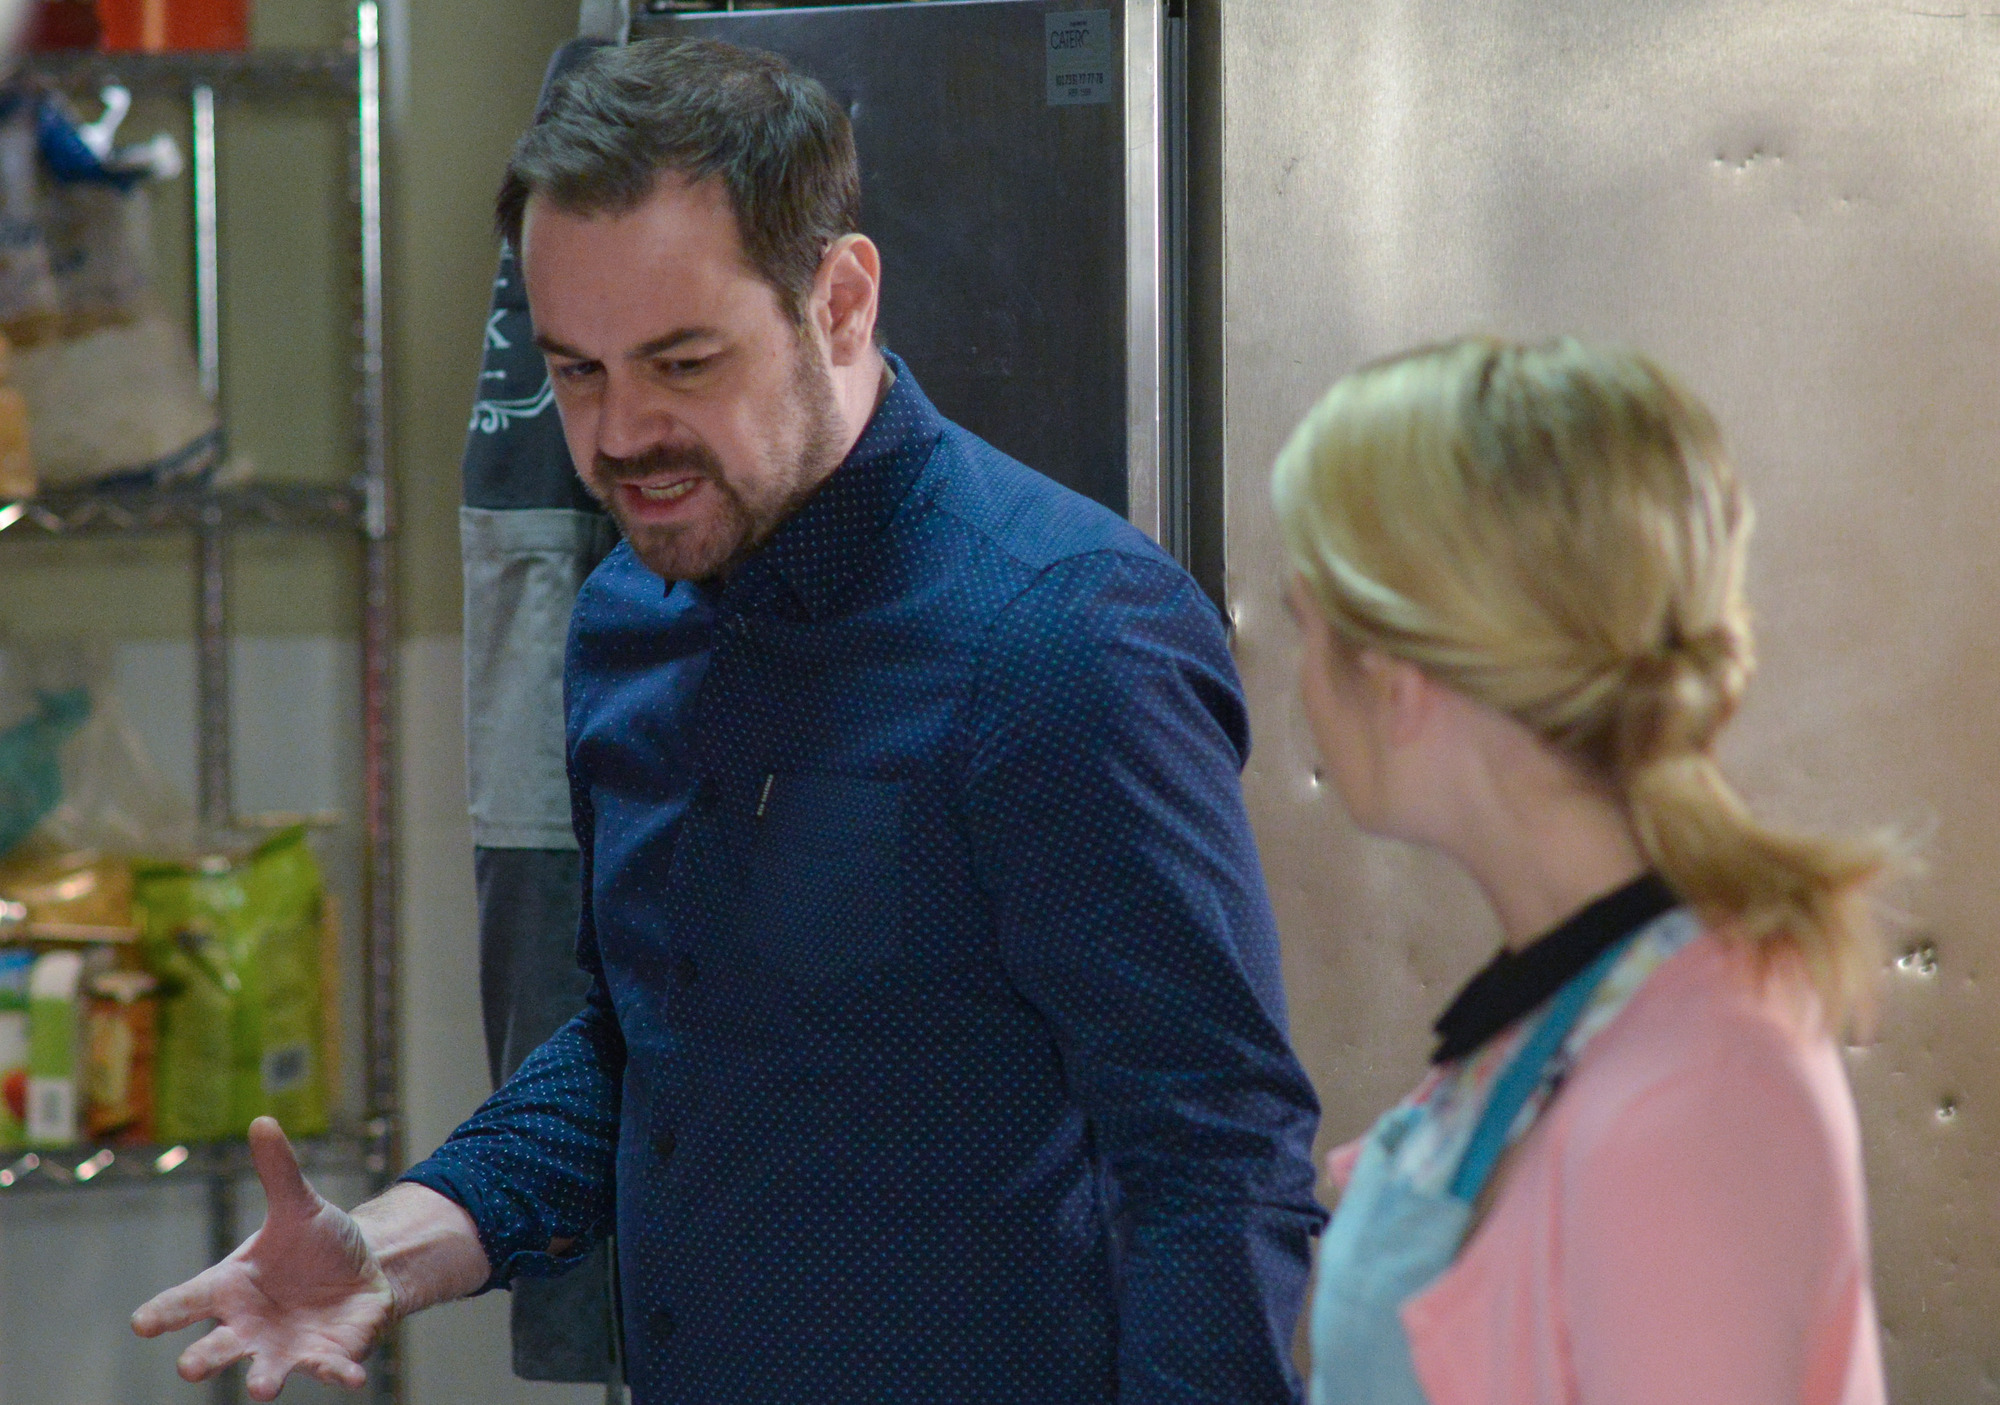 WARNING: Embargoed for publication until 00:00:01 on 31/01/2017 - Programme Name: EastEnders - January-March 2017 - TX: 09/02/2017 - Episode: EastEnders - January-March 2017 - 5439 (No. n/a) - Picture Shows: *STRICTLY NOT FOR PUBLICATION UNTIL 00:01HRS, TUESDAY 31st JANUARY, 2017* The stress of his financial worries is beginning to get to Mick. Mick Carter (DANNY DYER), Abi Branning (LORNA FITZGERALD) - (C) BBC - Photographer: Jack Barnes